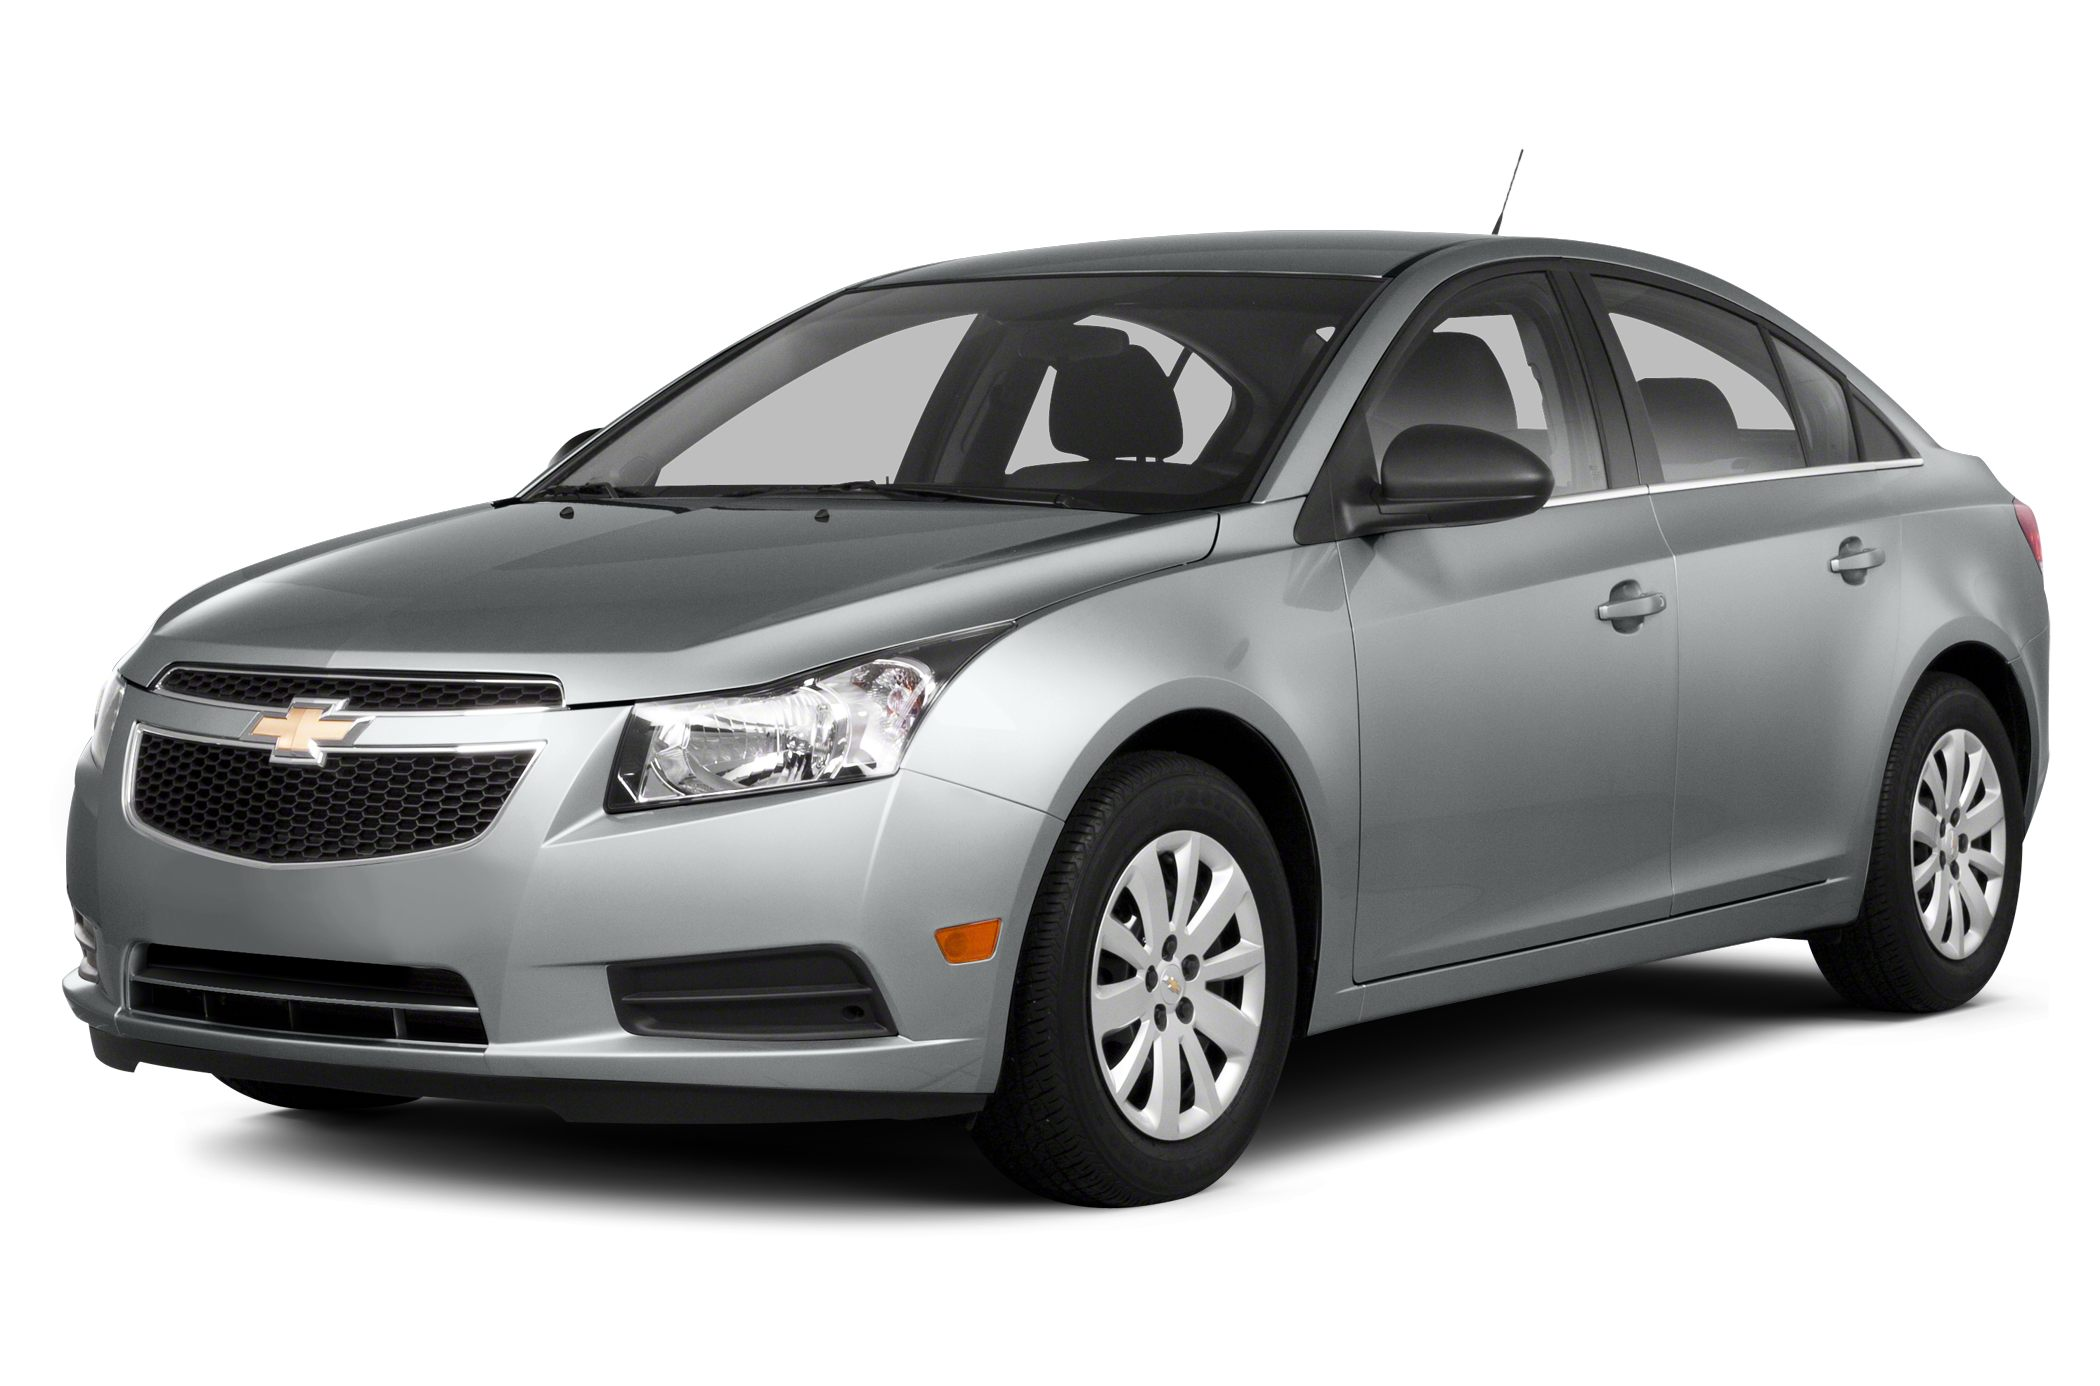 2013 Chevrolet Cruze LS Sedan for sale in Des Moines for $12,995 with 67,688 miles.